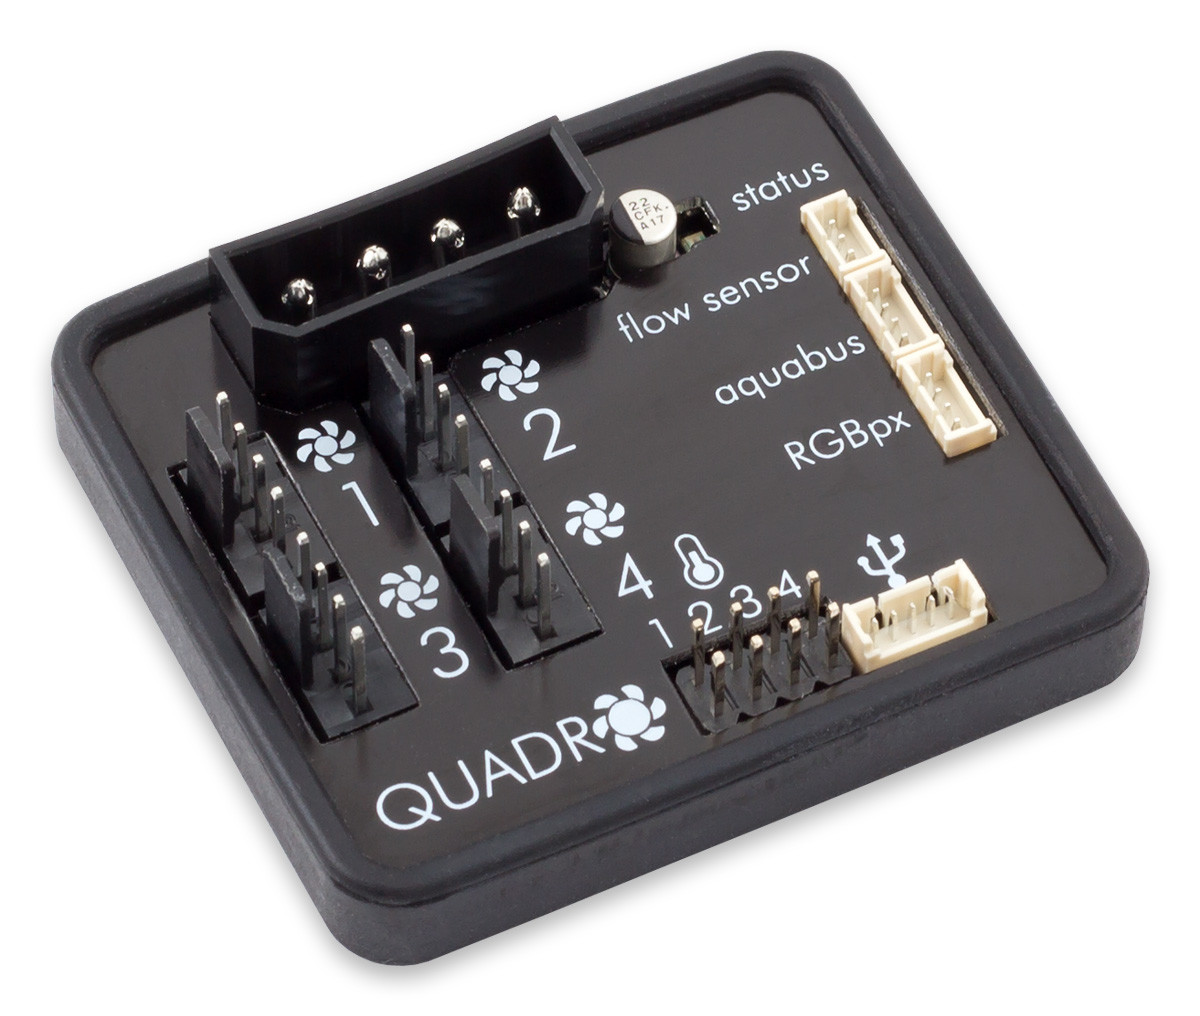 Aqua Computer Announces The Quadro Smart Led Fan Controller Temperature Controled In Addition To Setting Speed Manually Can Also Be Controlled By Mode Set Point Controllers As Well